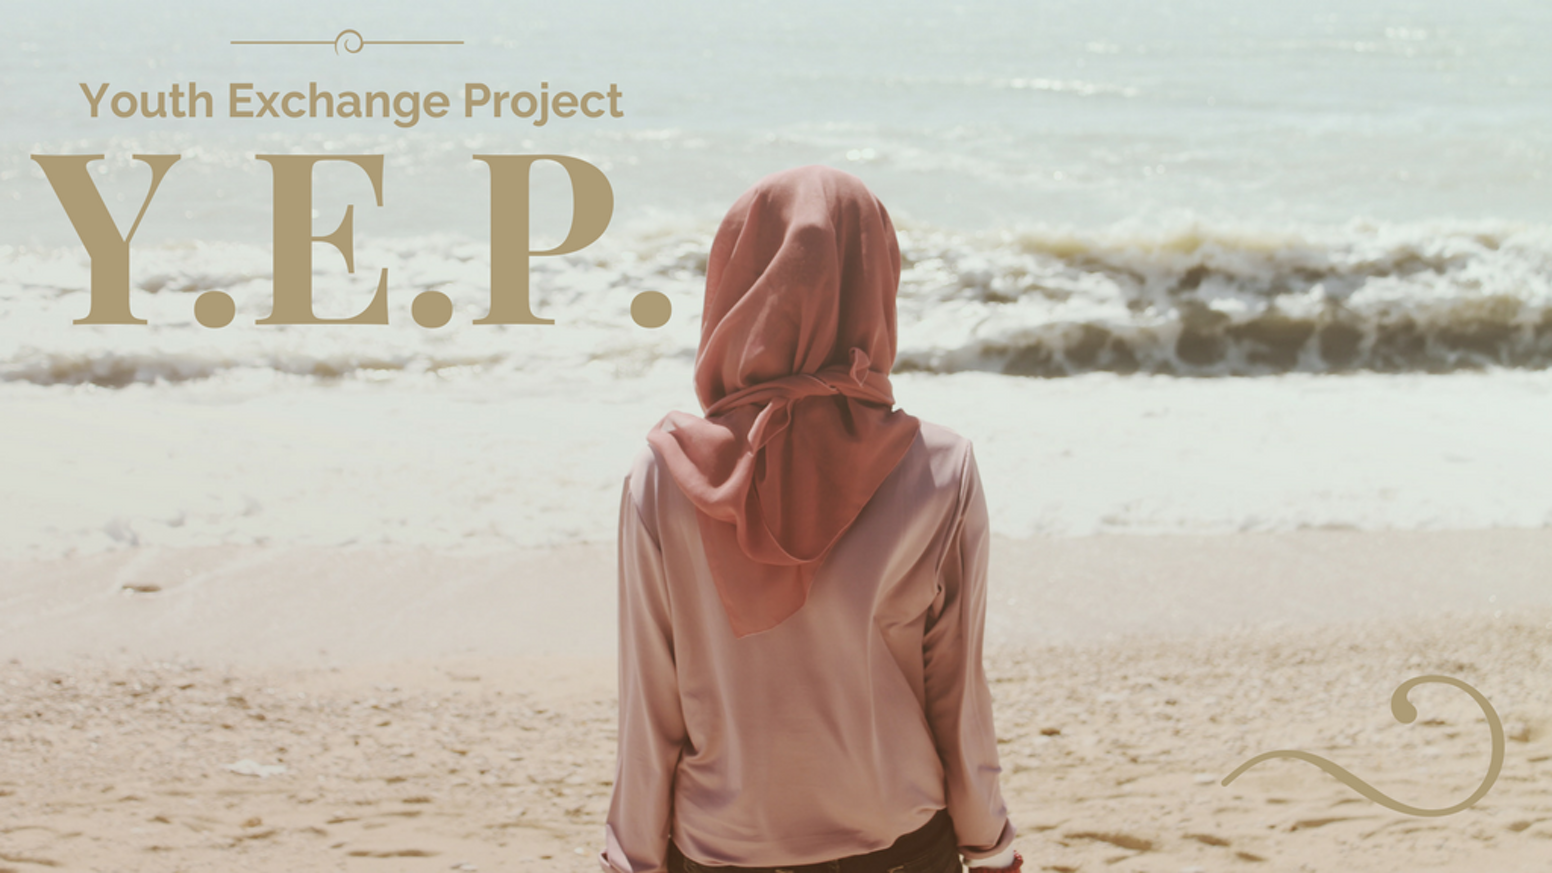 The Youth Exchange Project will directly engage middle school-aged refugees to use theatre in order to tell their personal stories. https://youthexchangeproject.org/